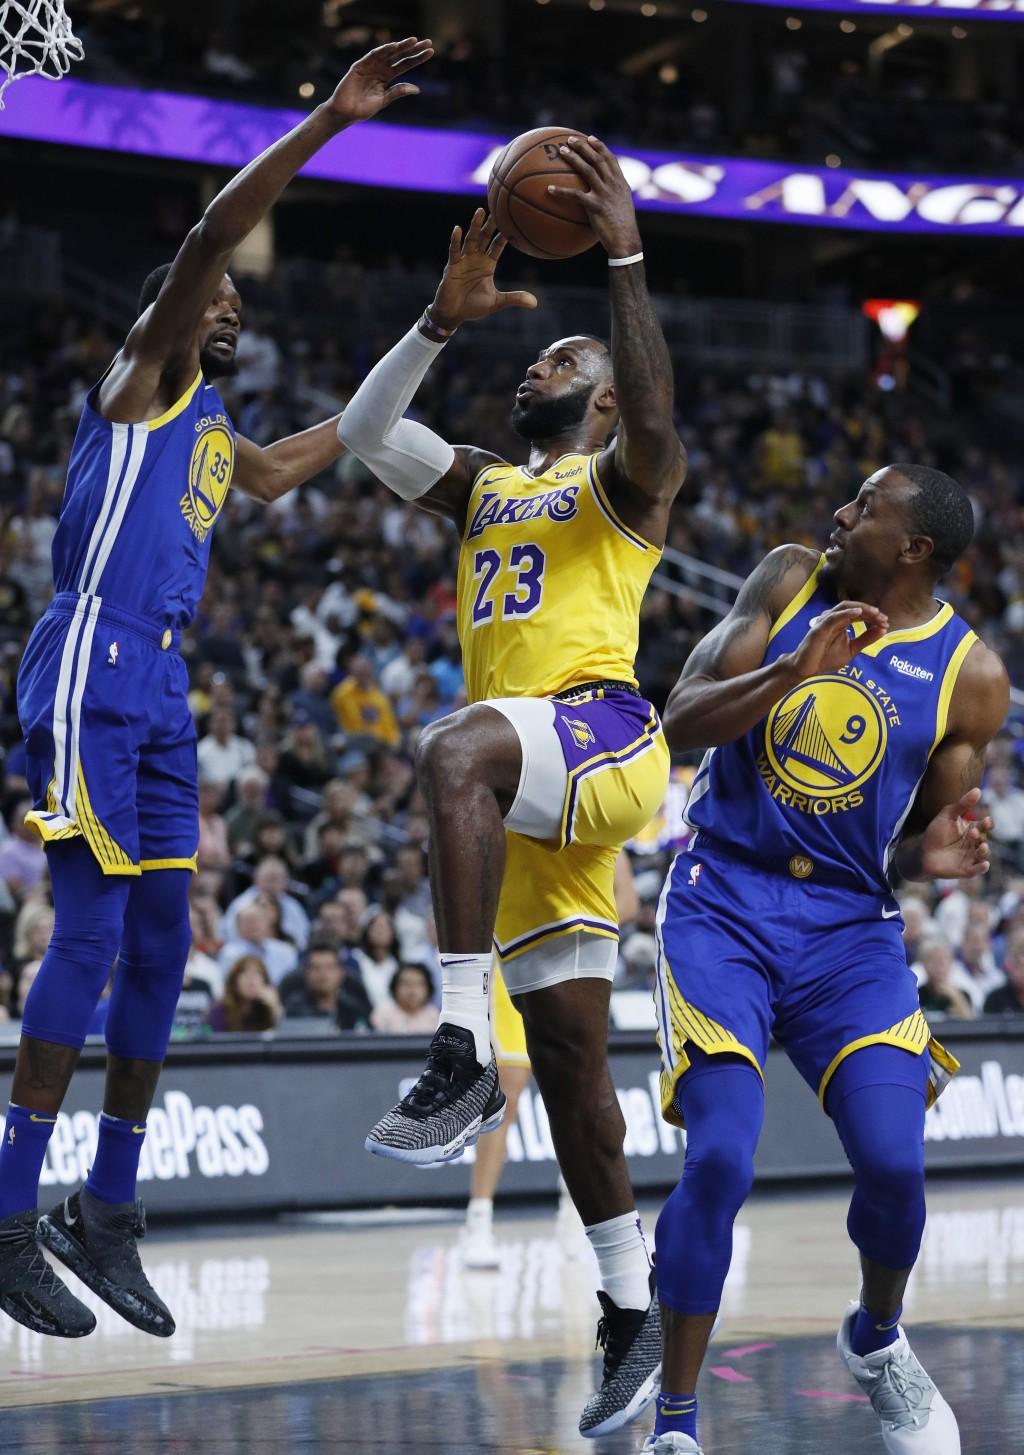 Los Angeles Lakers forward LeBron James (23) shoots between Golden State Warriors forward Kevin Durant, left, and guard Andre Iguodala during the firs